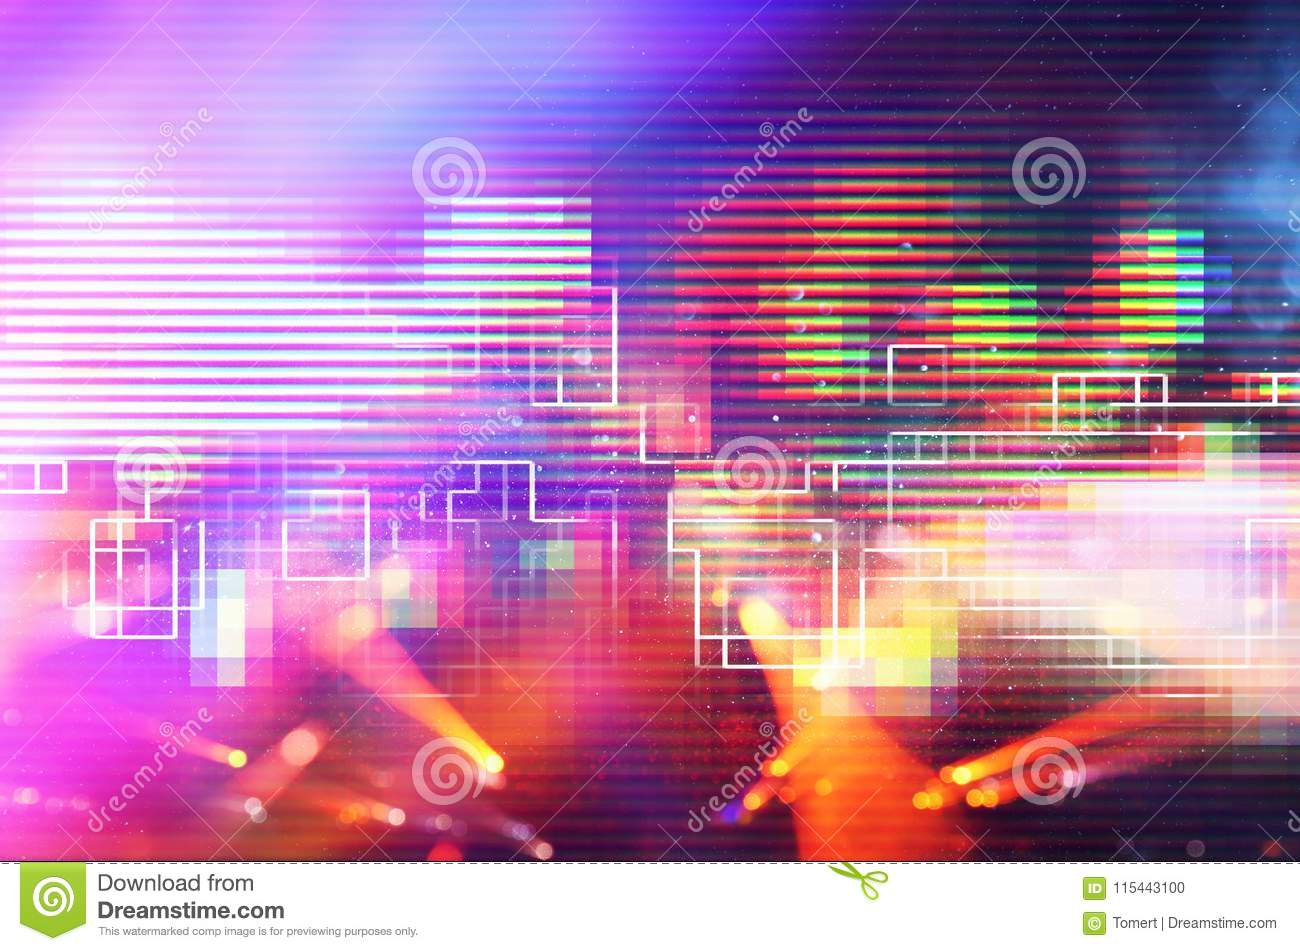 Futuristic retro background of the 80`s retro style. Digital or Cyber Surface. neon lights and geometric pattern.